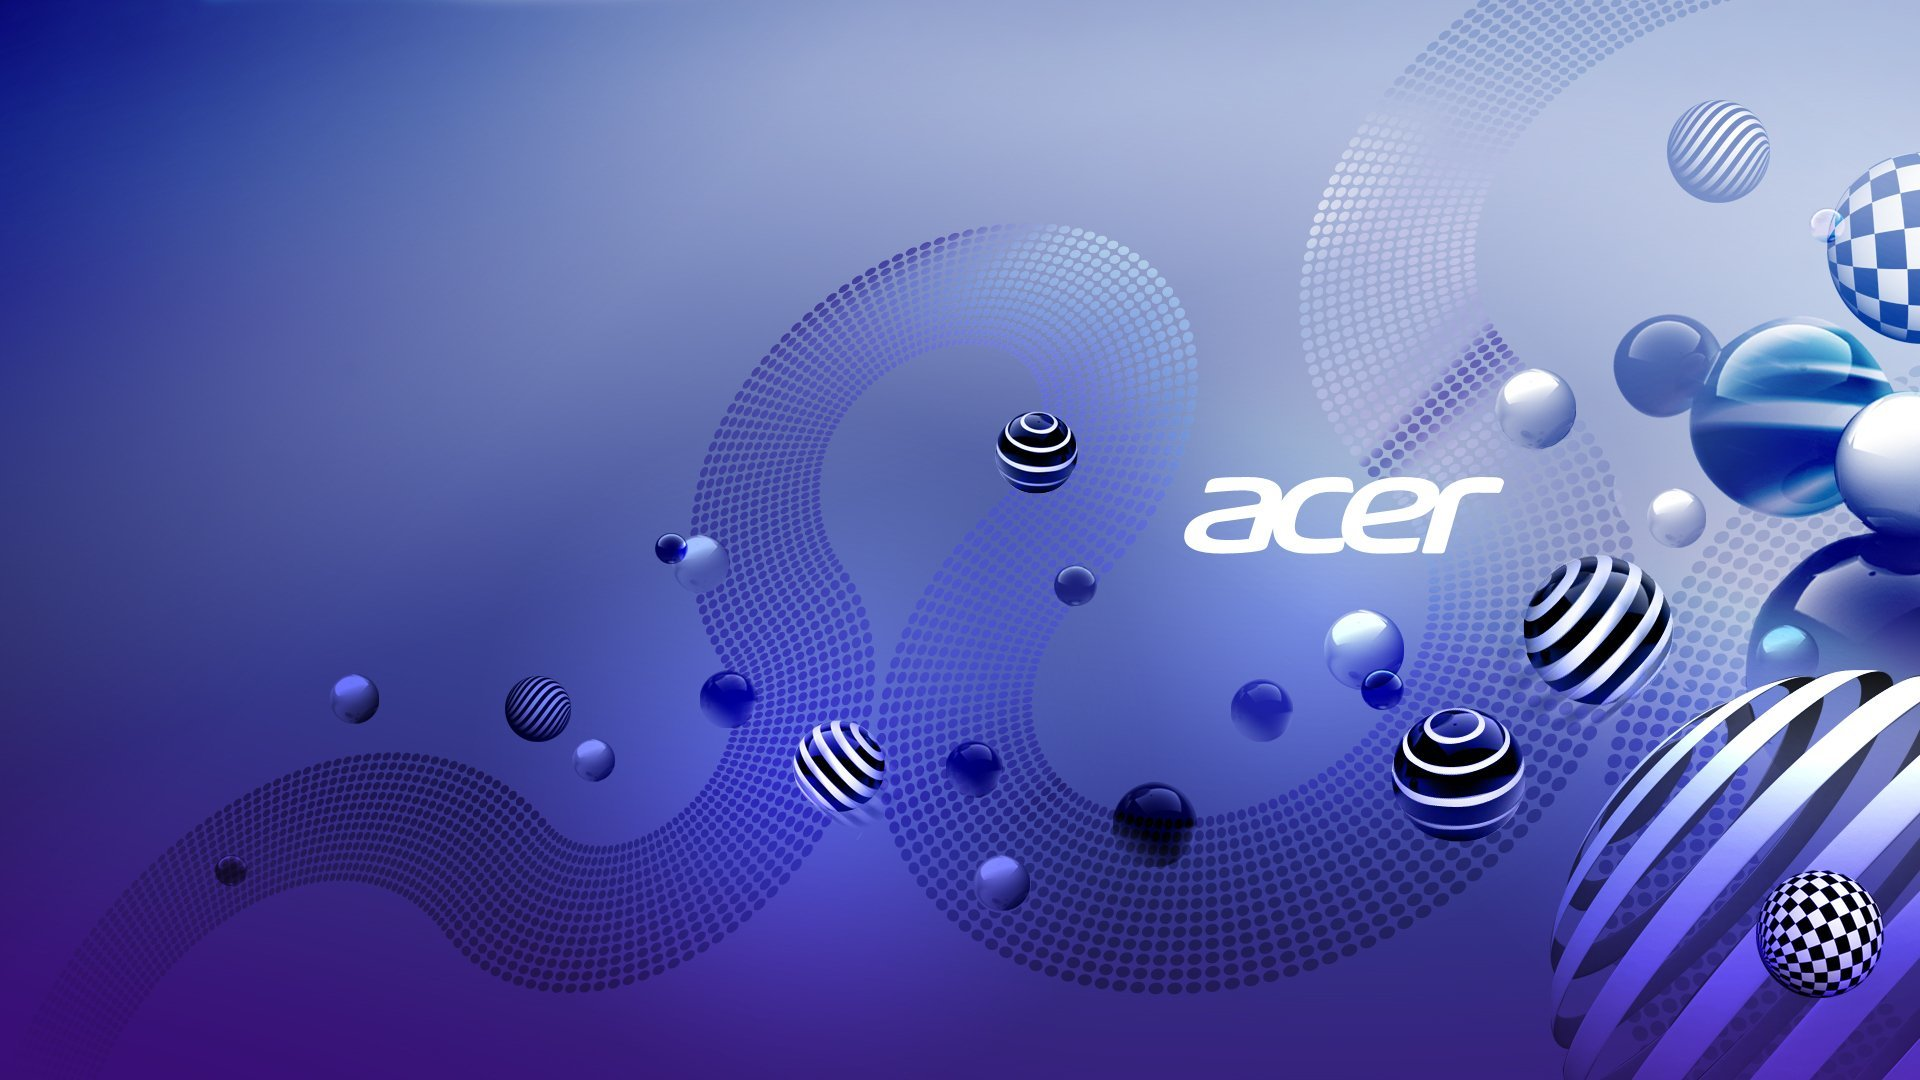 Download full hd 1920x1080 Acer computer wallpaper ID:291022 for free